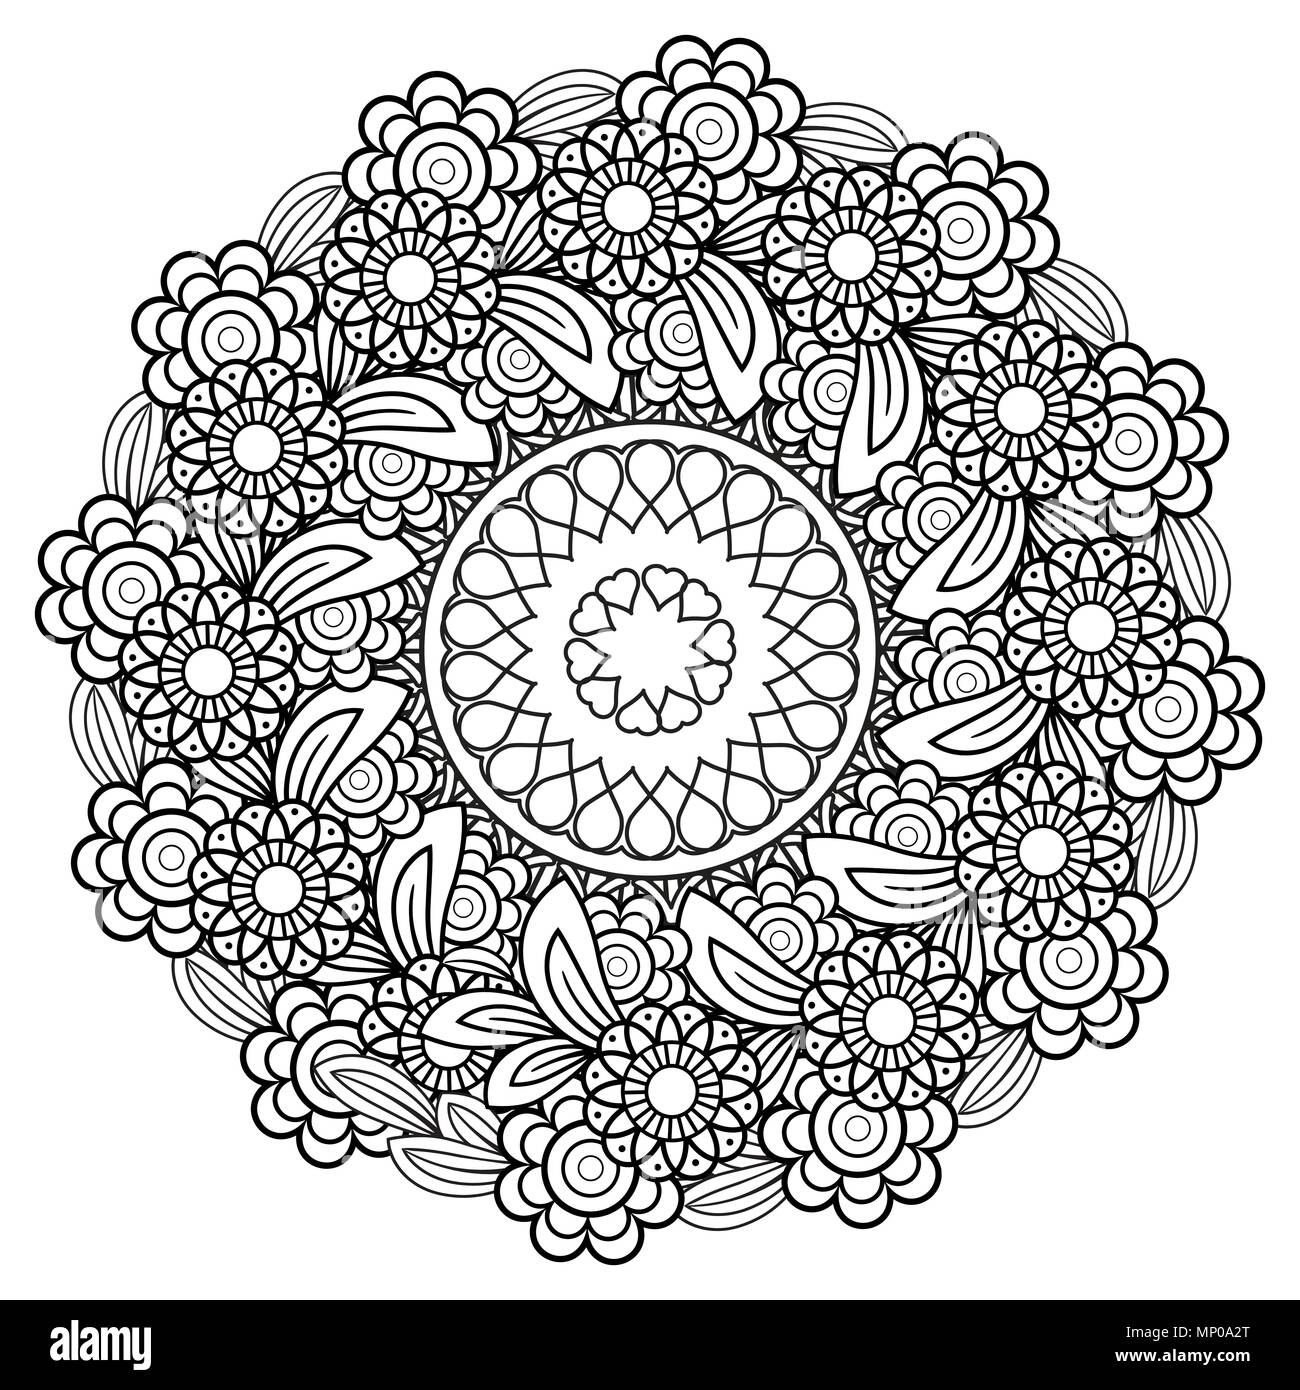 Adult Coloring Page With Flowers Pattern Black And White Doodle Wreath Floral Mandala Bouquet Line Art Vector Illustration Isolated On Background